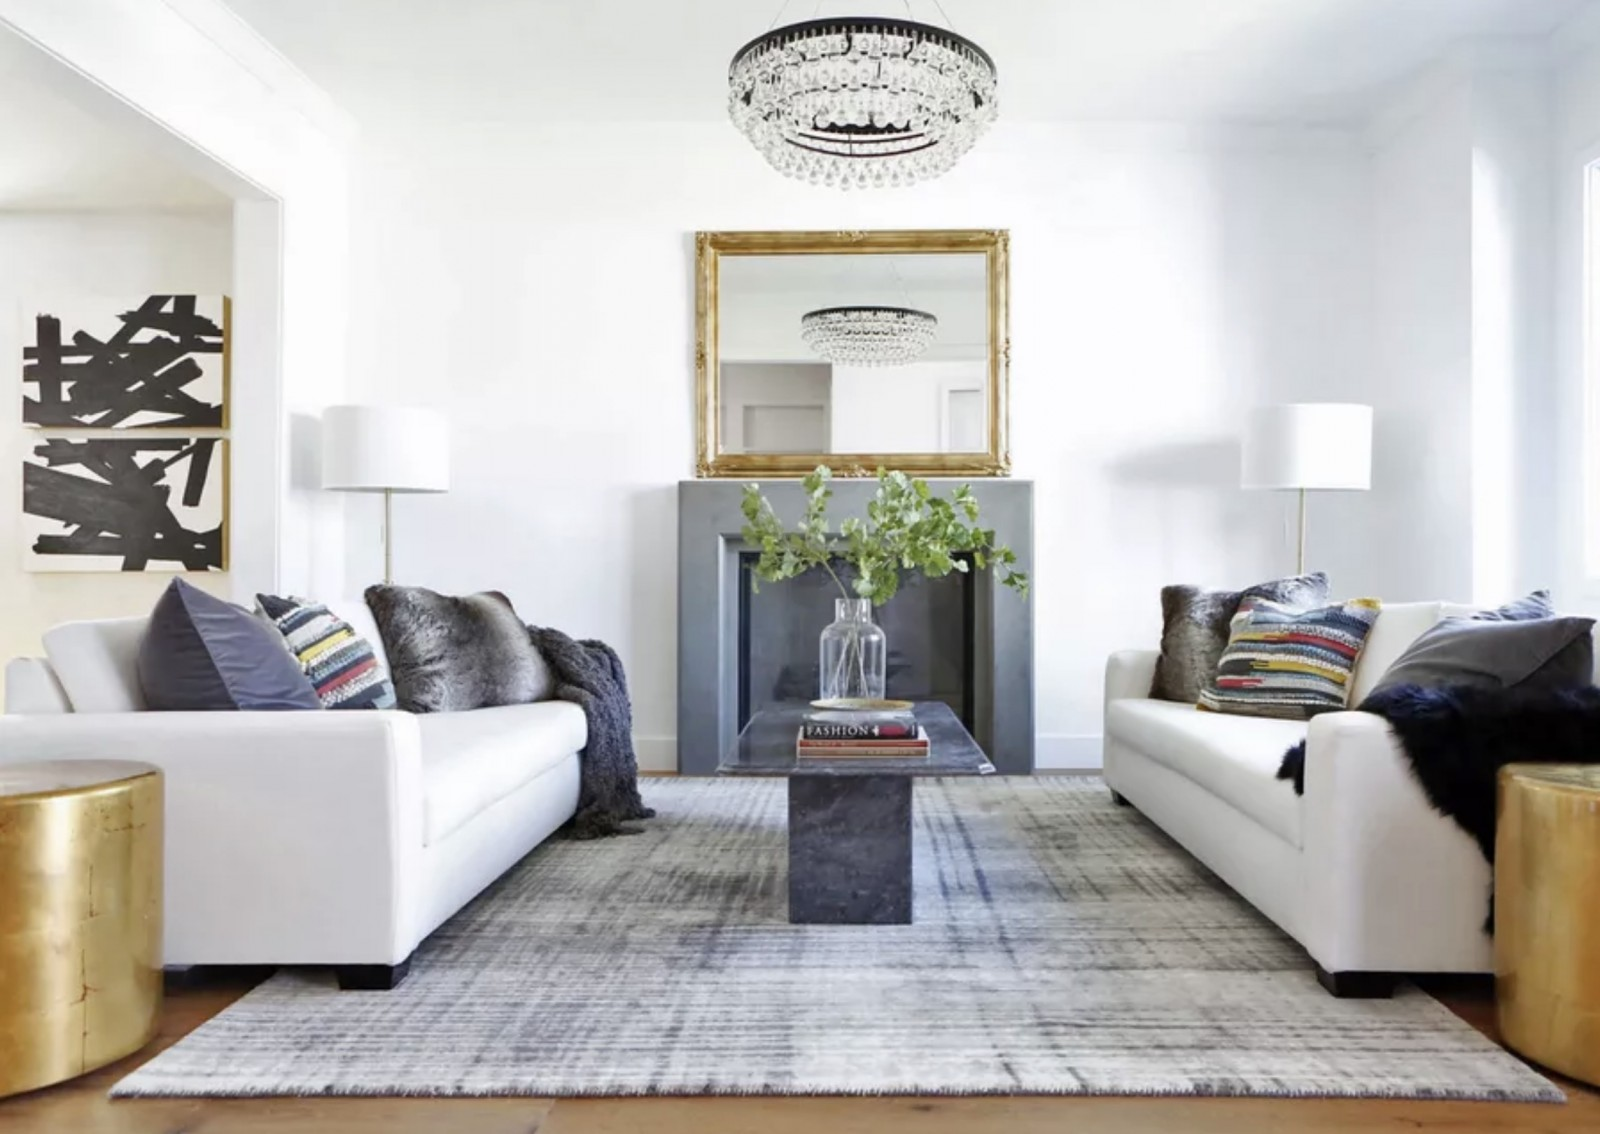 15 Fireplace Design Ideas for Room Warming Style